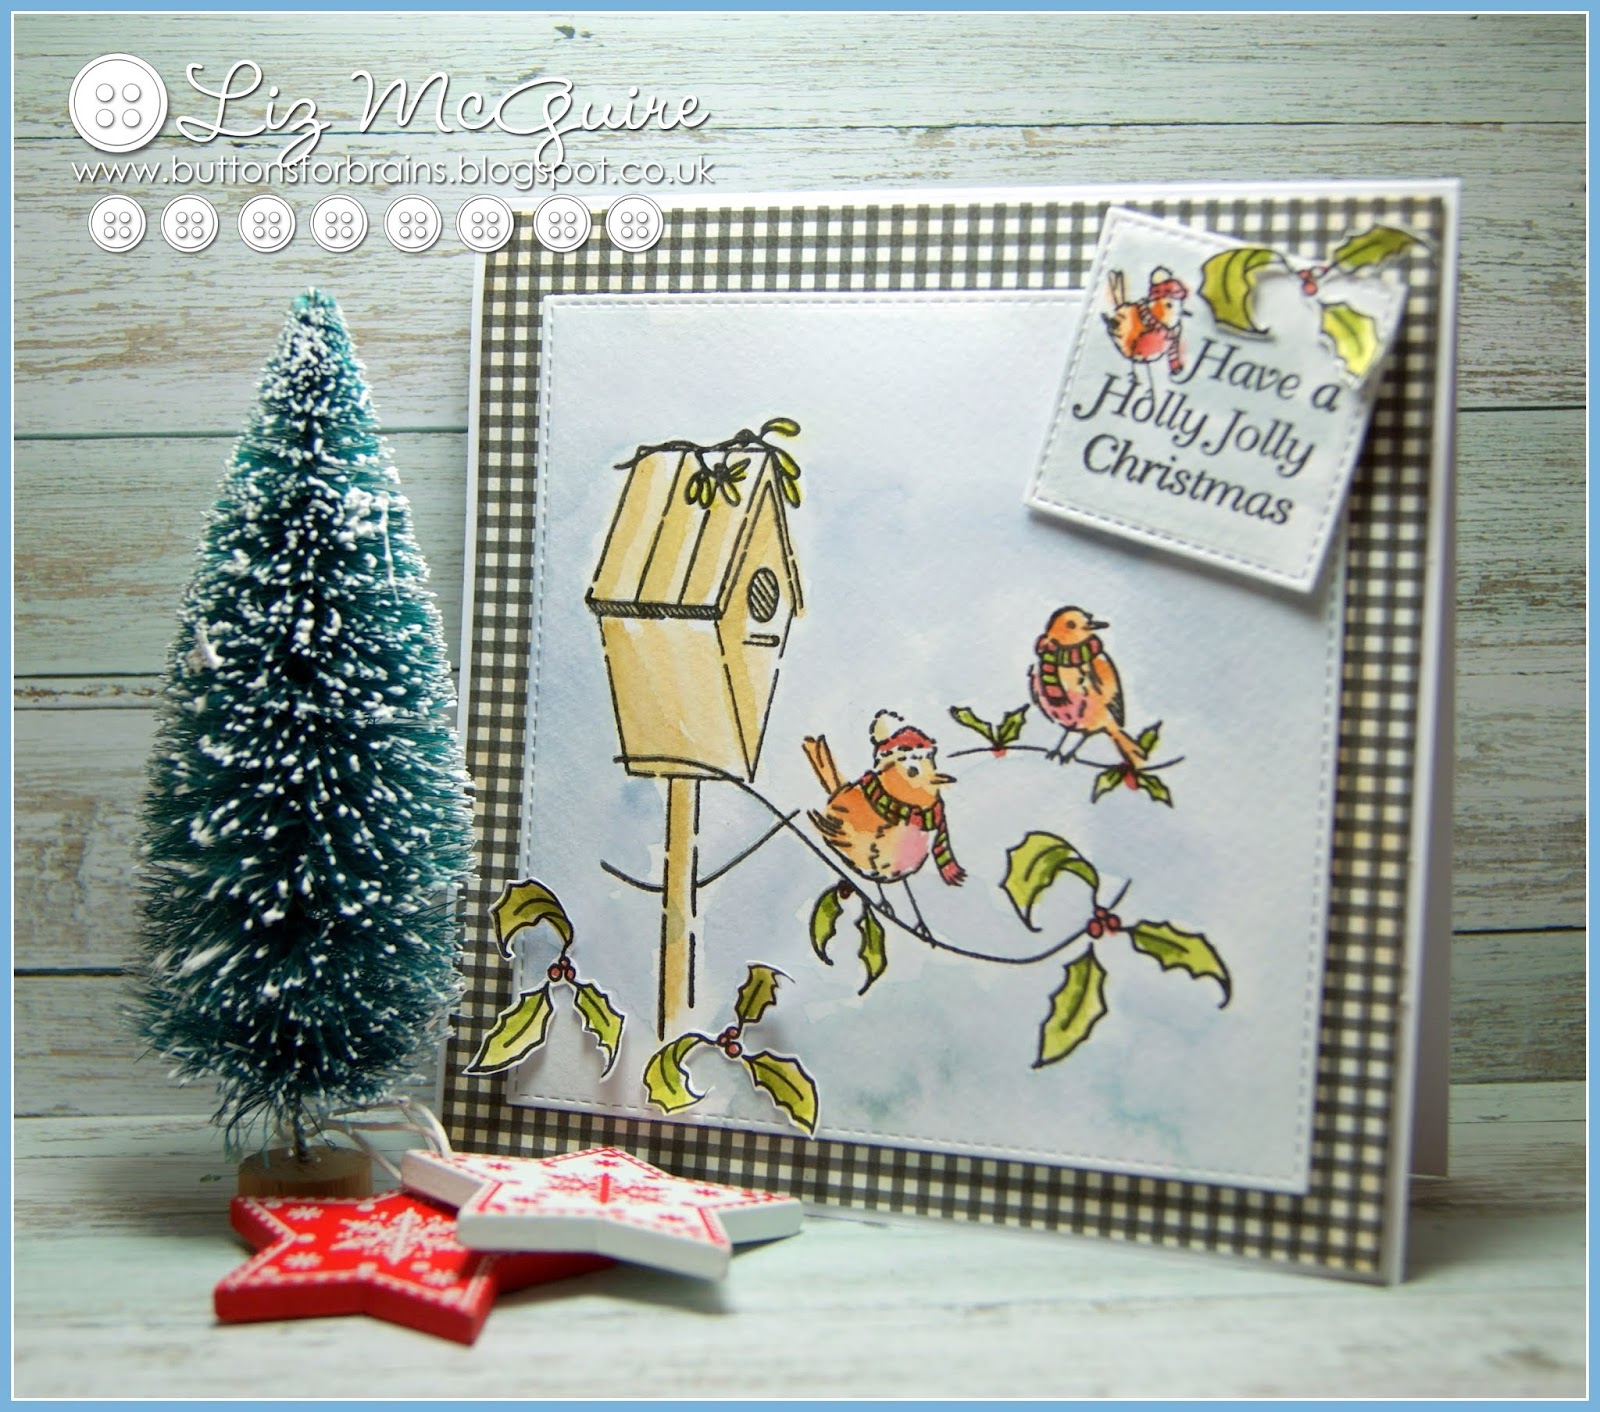 buttonsforbrains: Holly Jolly Christmas